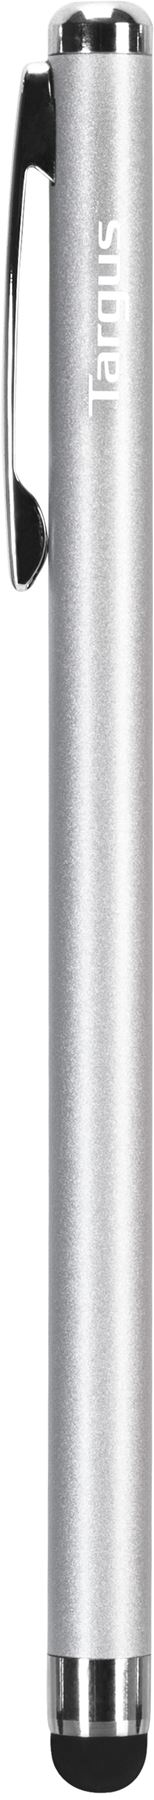 Picture of Targus Slim Stylus for Smartphones (Silver)